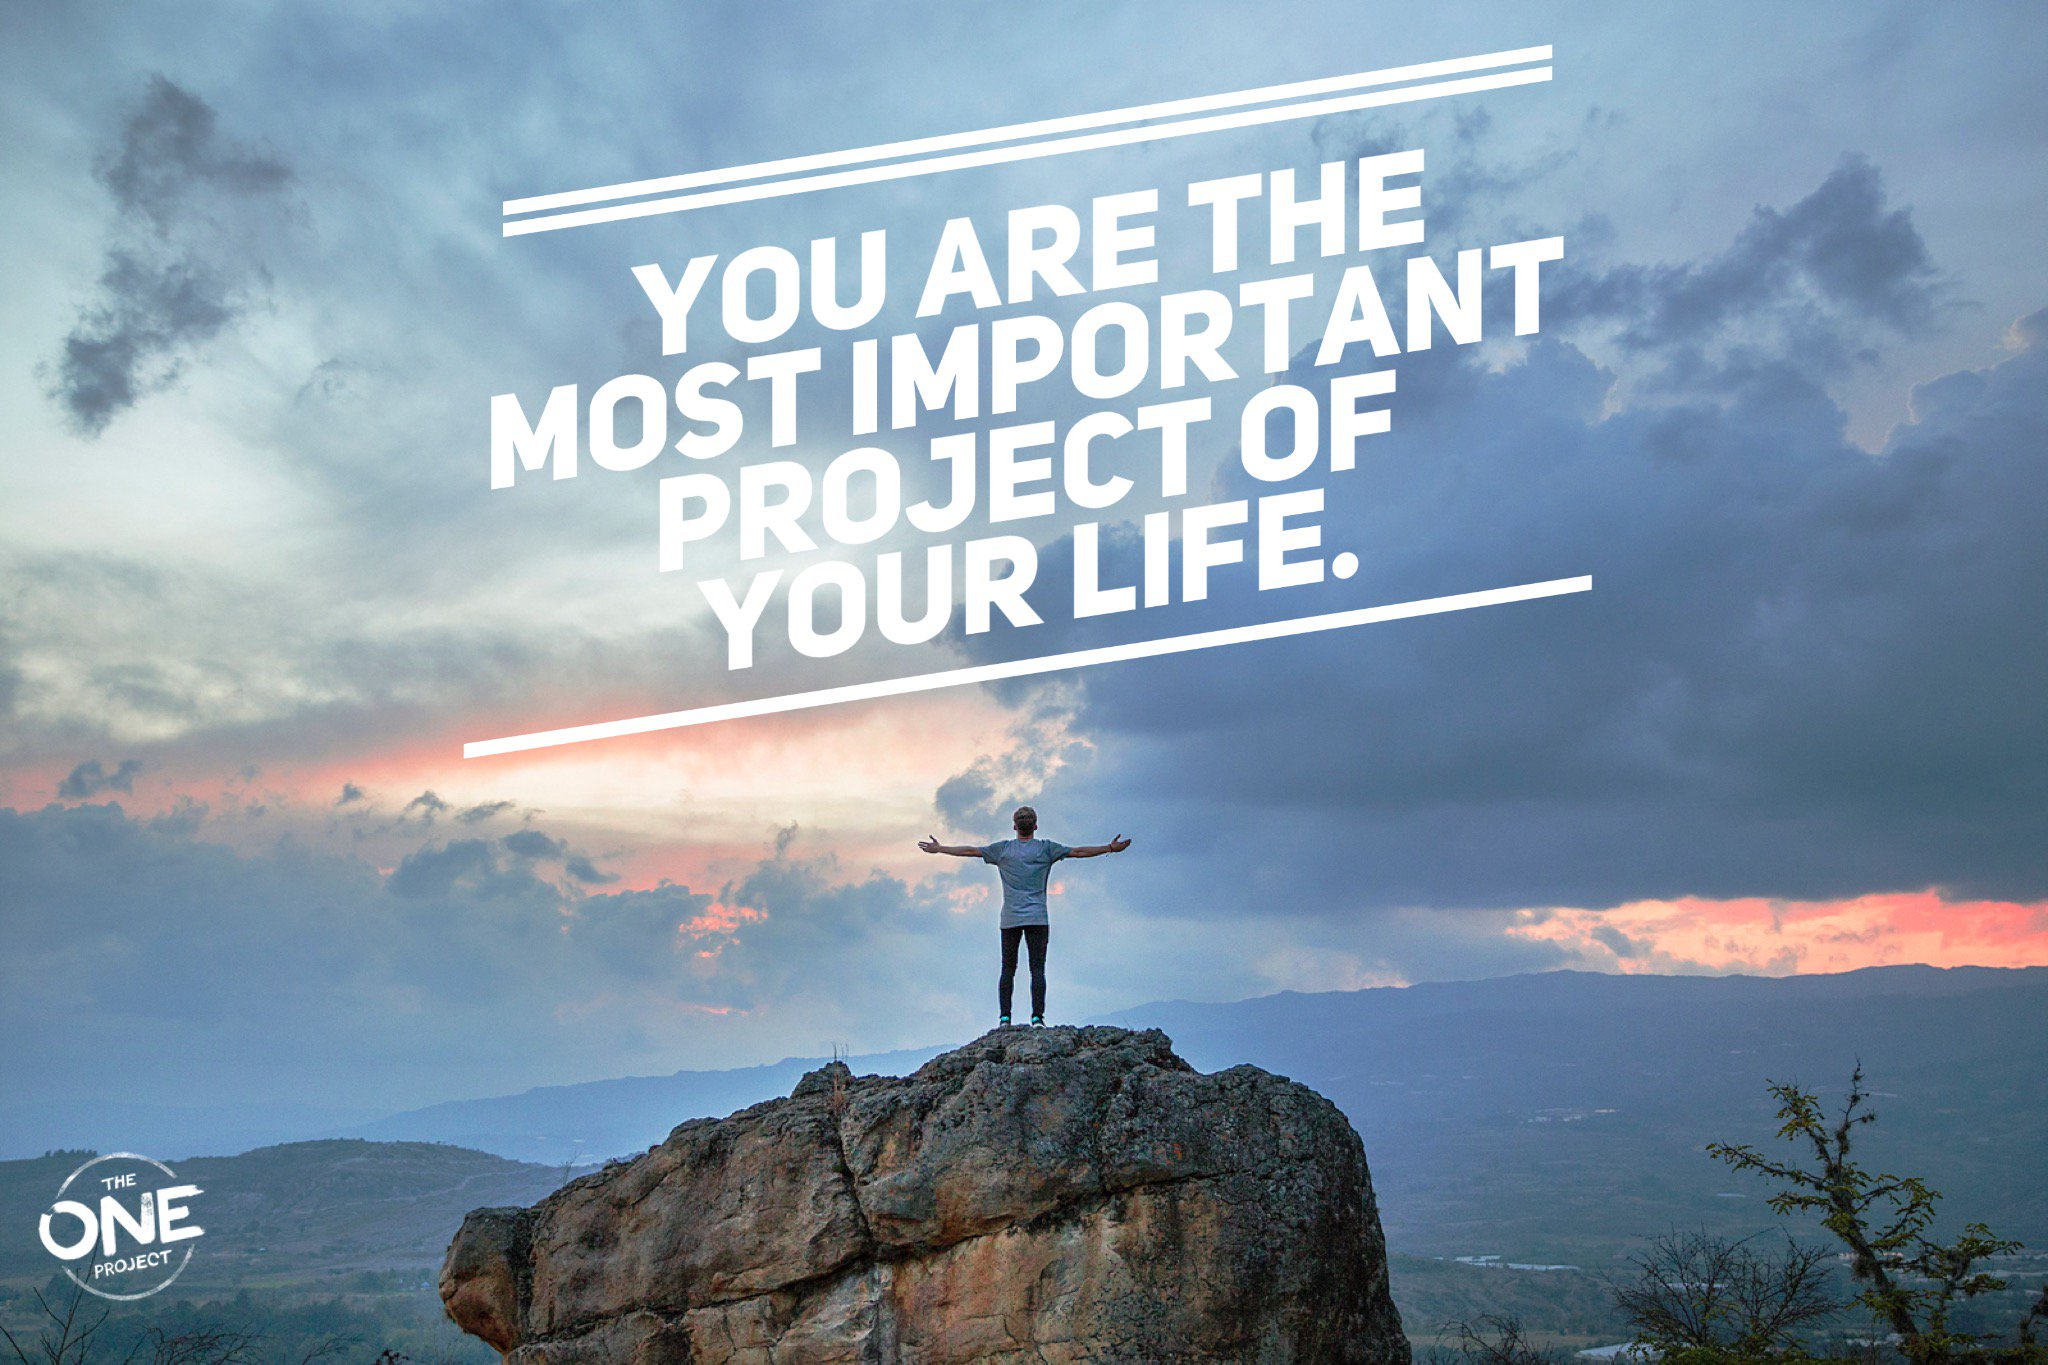 You are the most important project of your life. #WEDay https://t.co/APpZw2xe5C